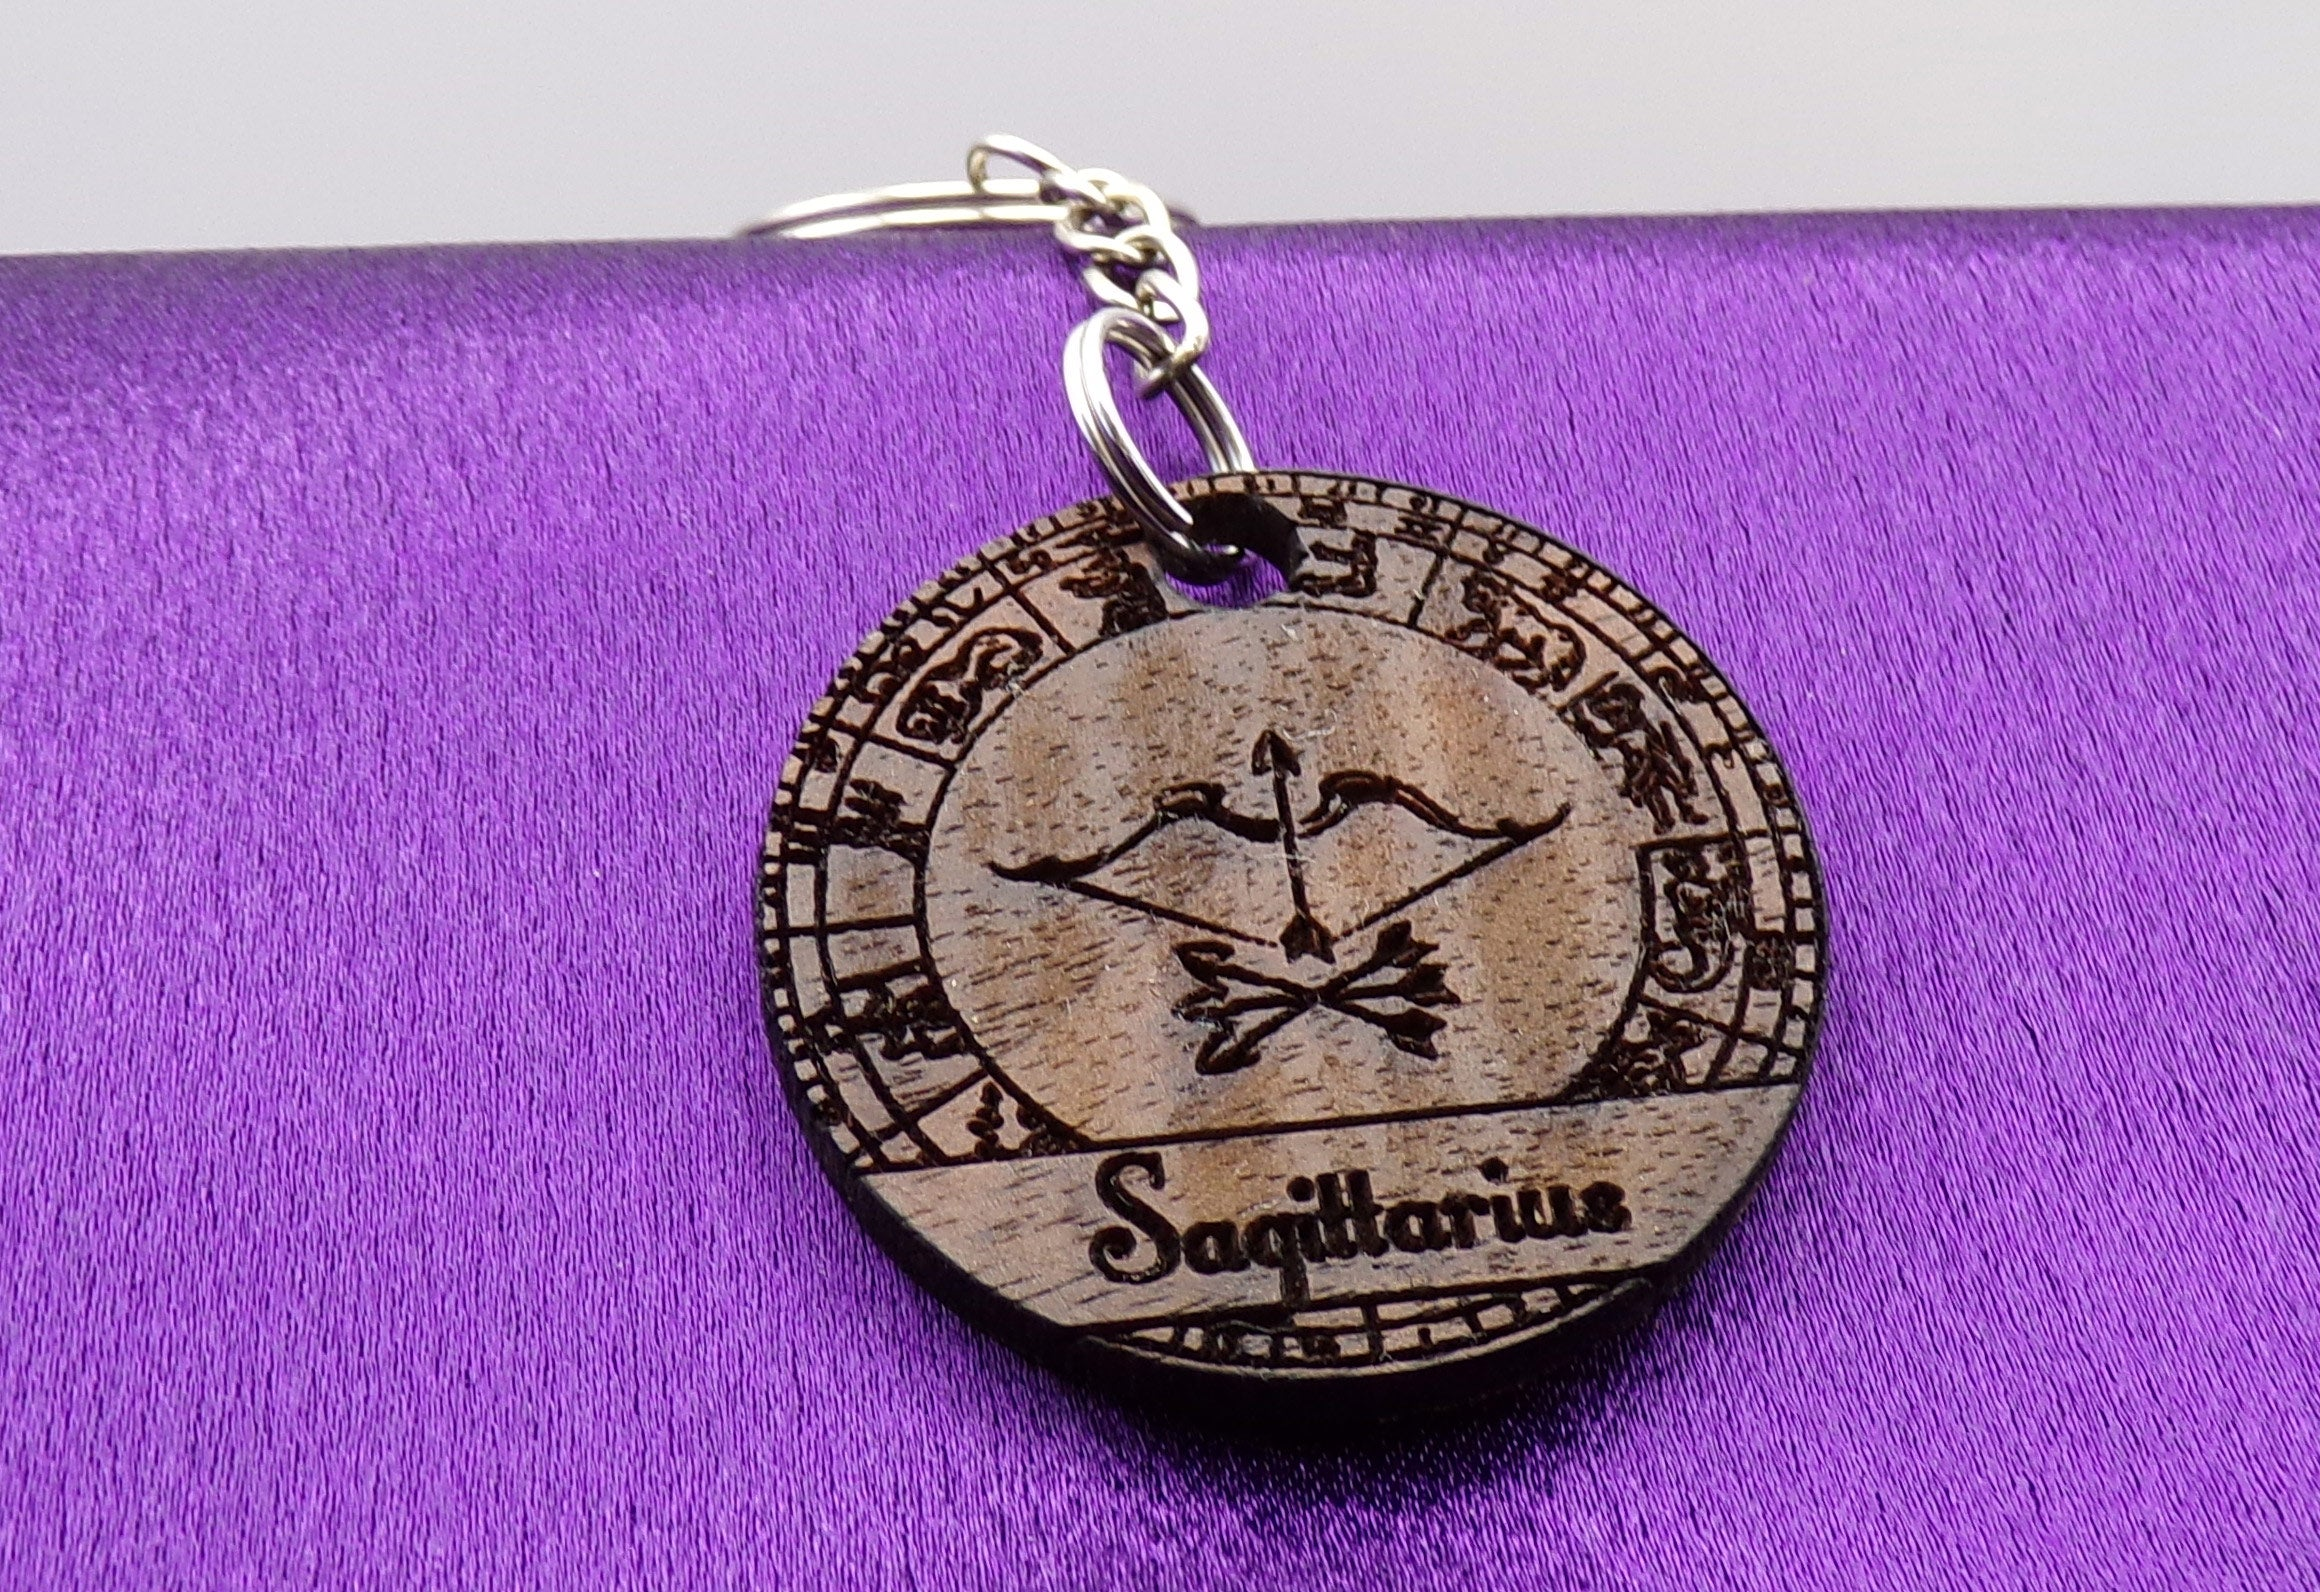 Sagittarius Key chain - Walnut